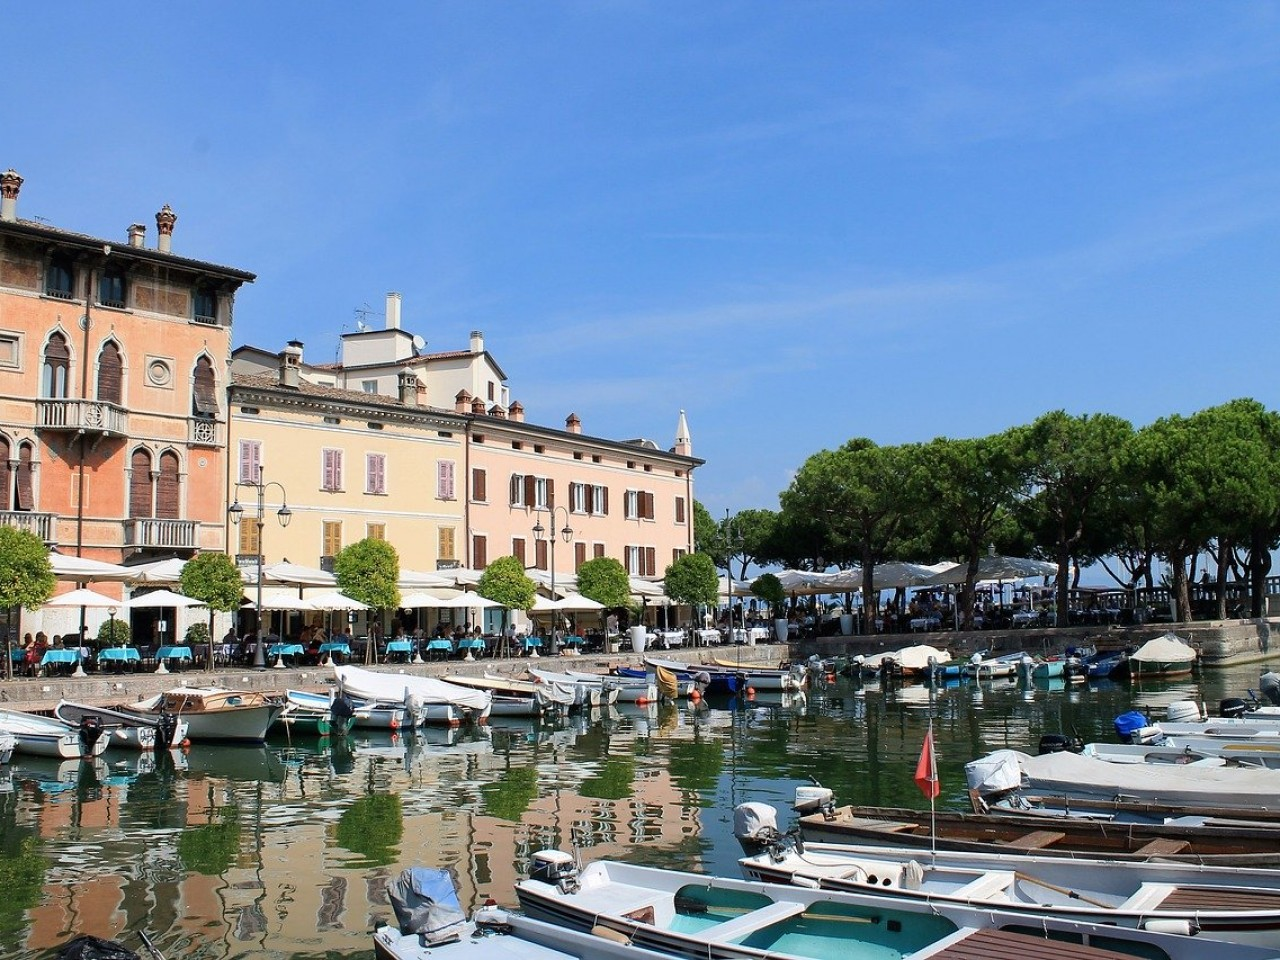 WEEK END IN DESENZANO DEL GARDA